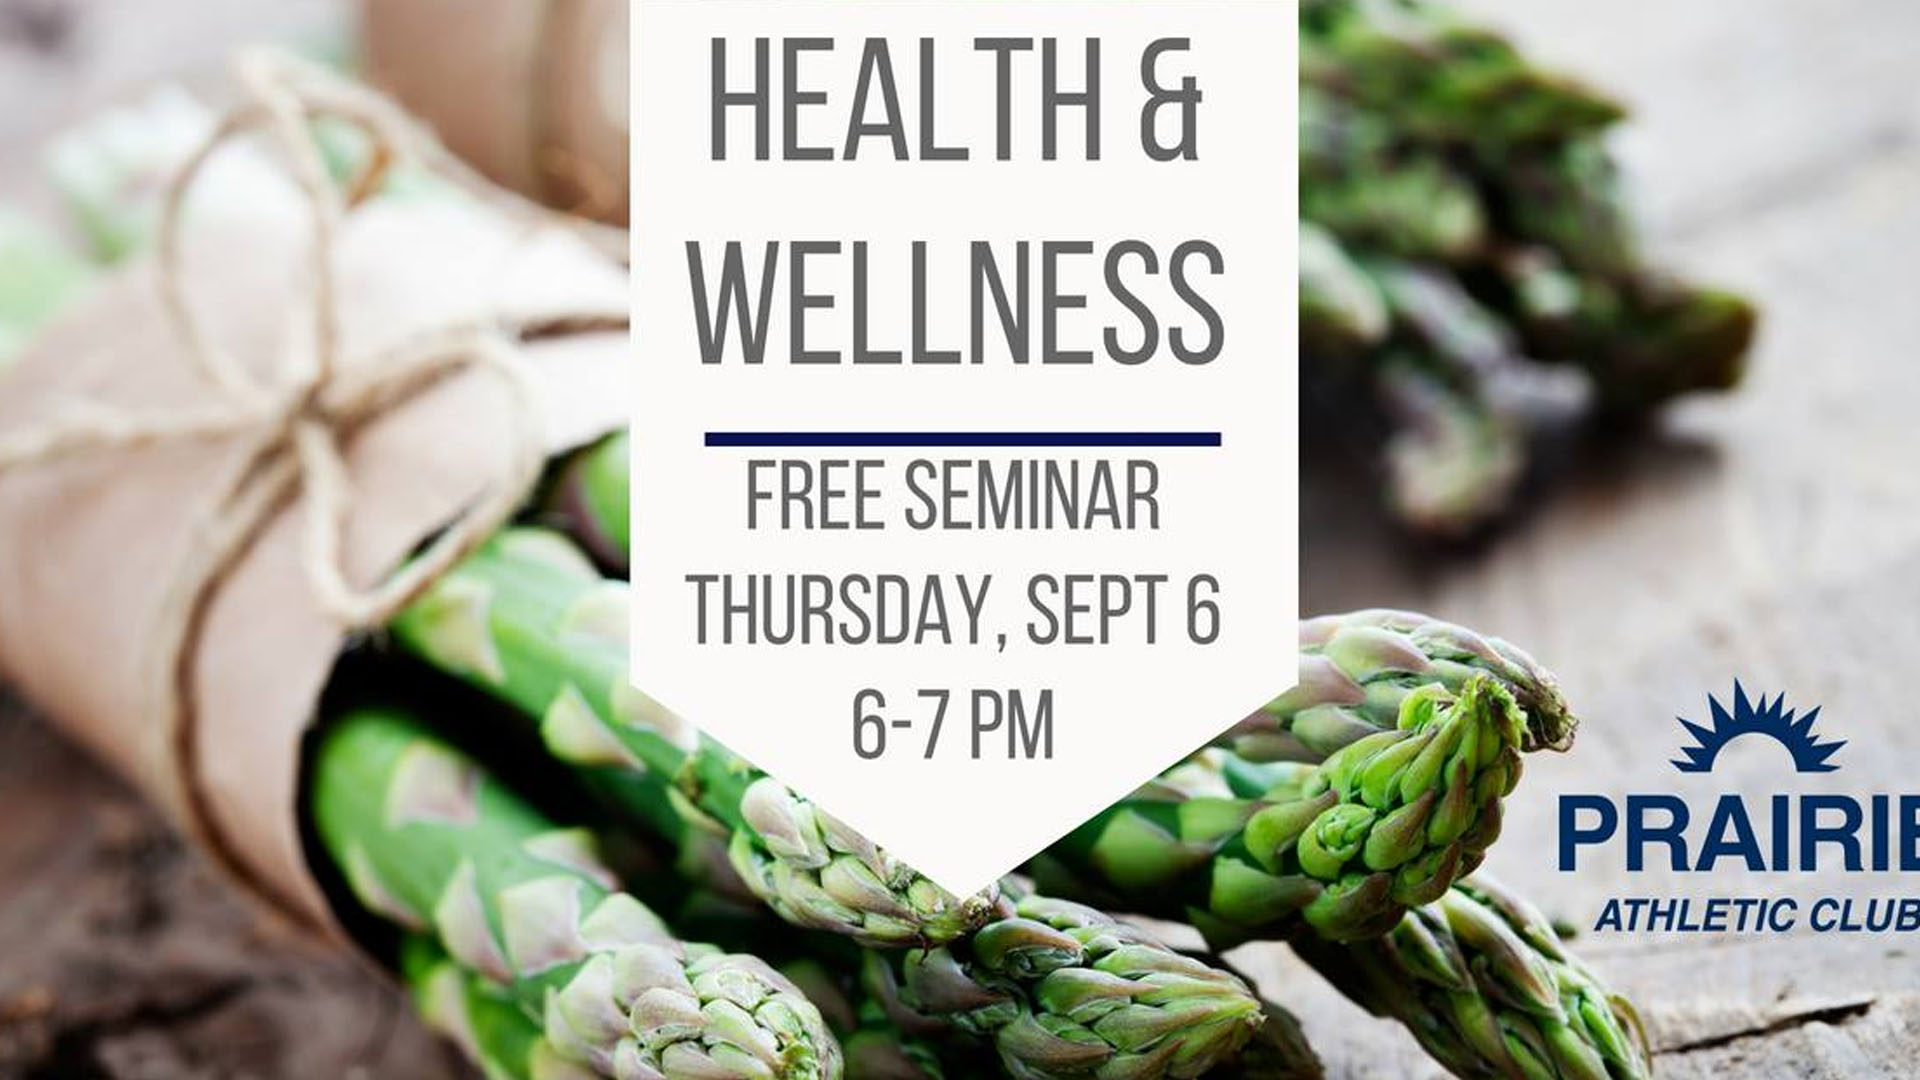 Health and Wellness Seminar at Prairie Athletic Club